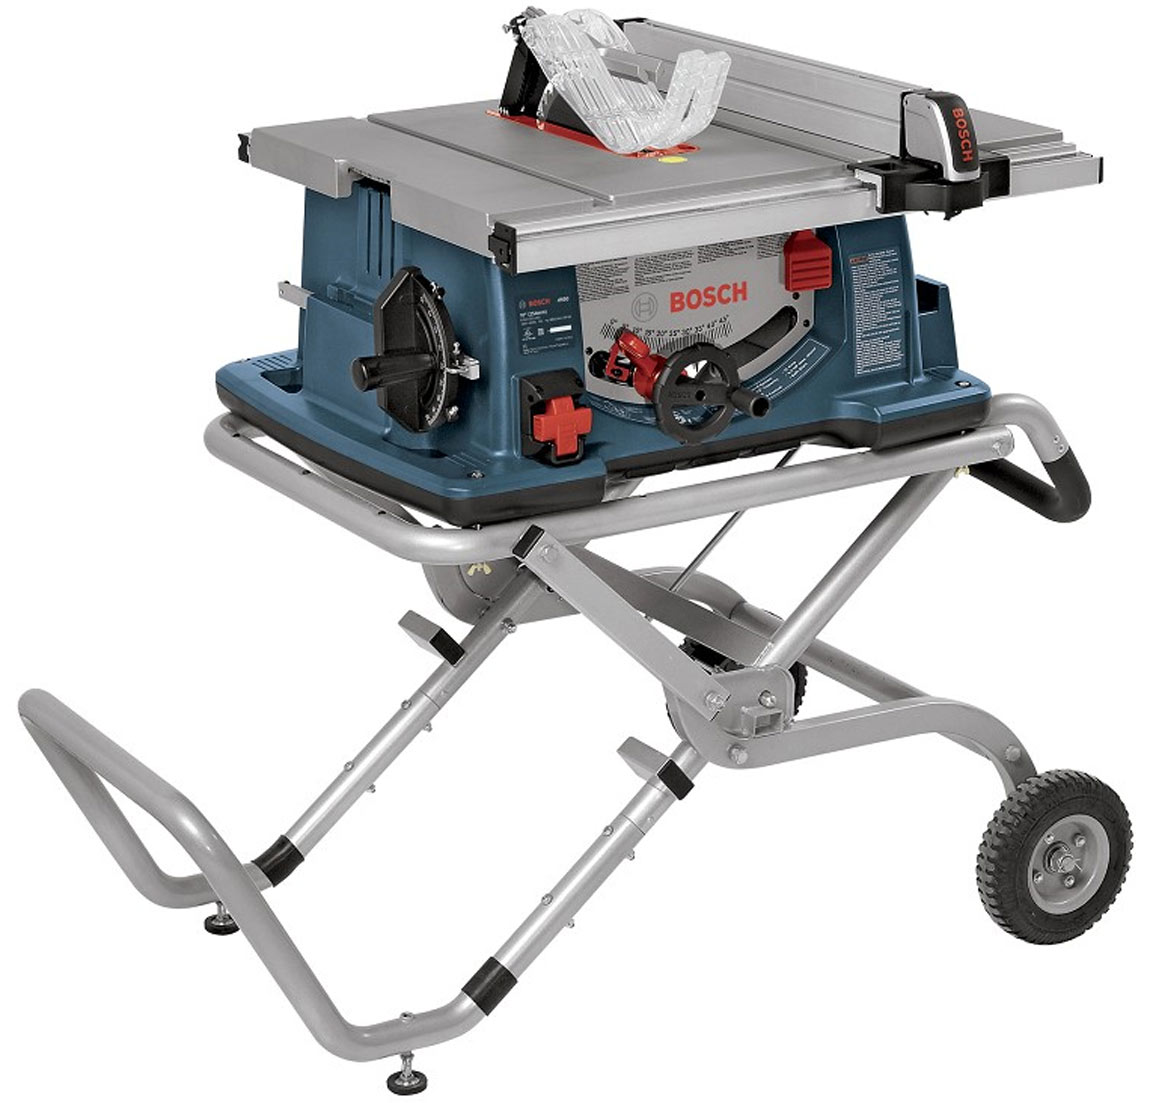 Bosch 4100 09 table saw review sturdy and accurate for Un stand